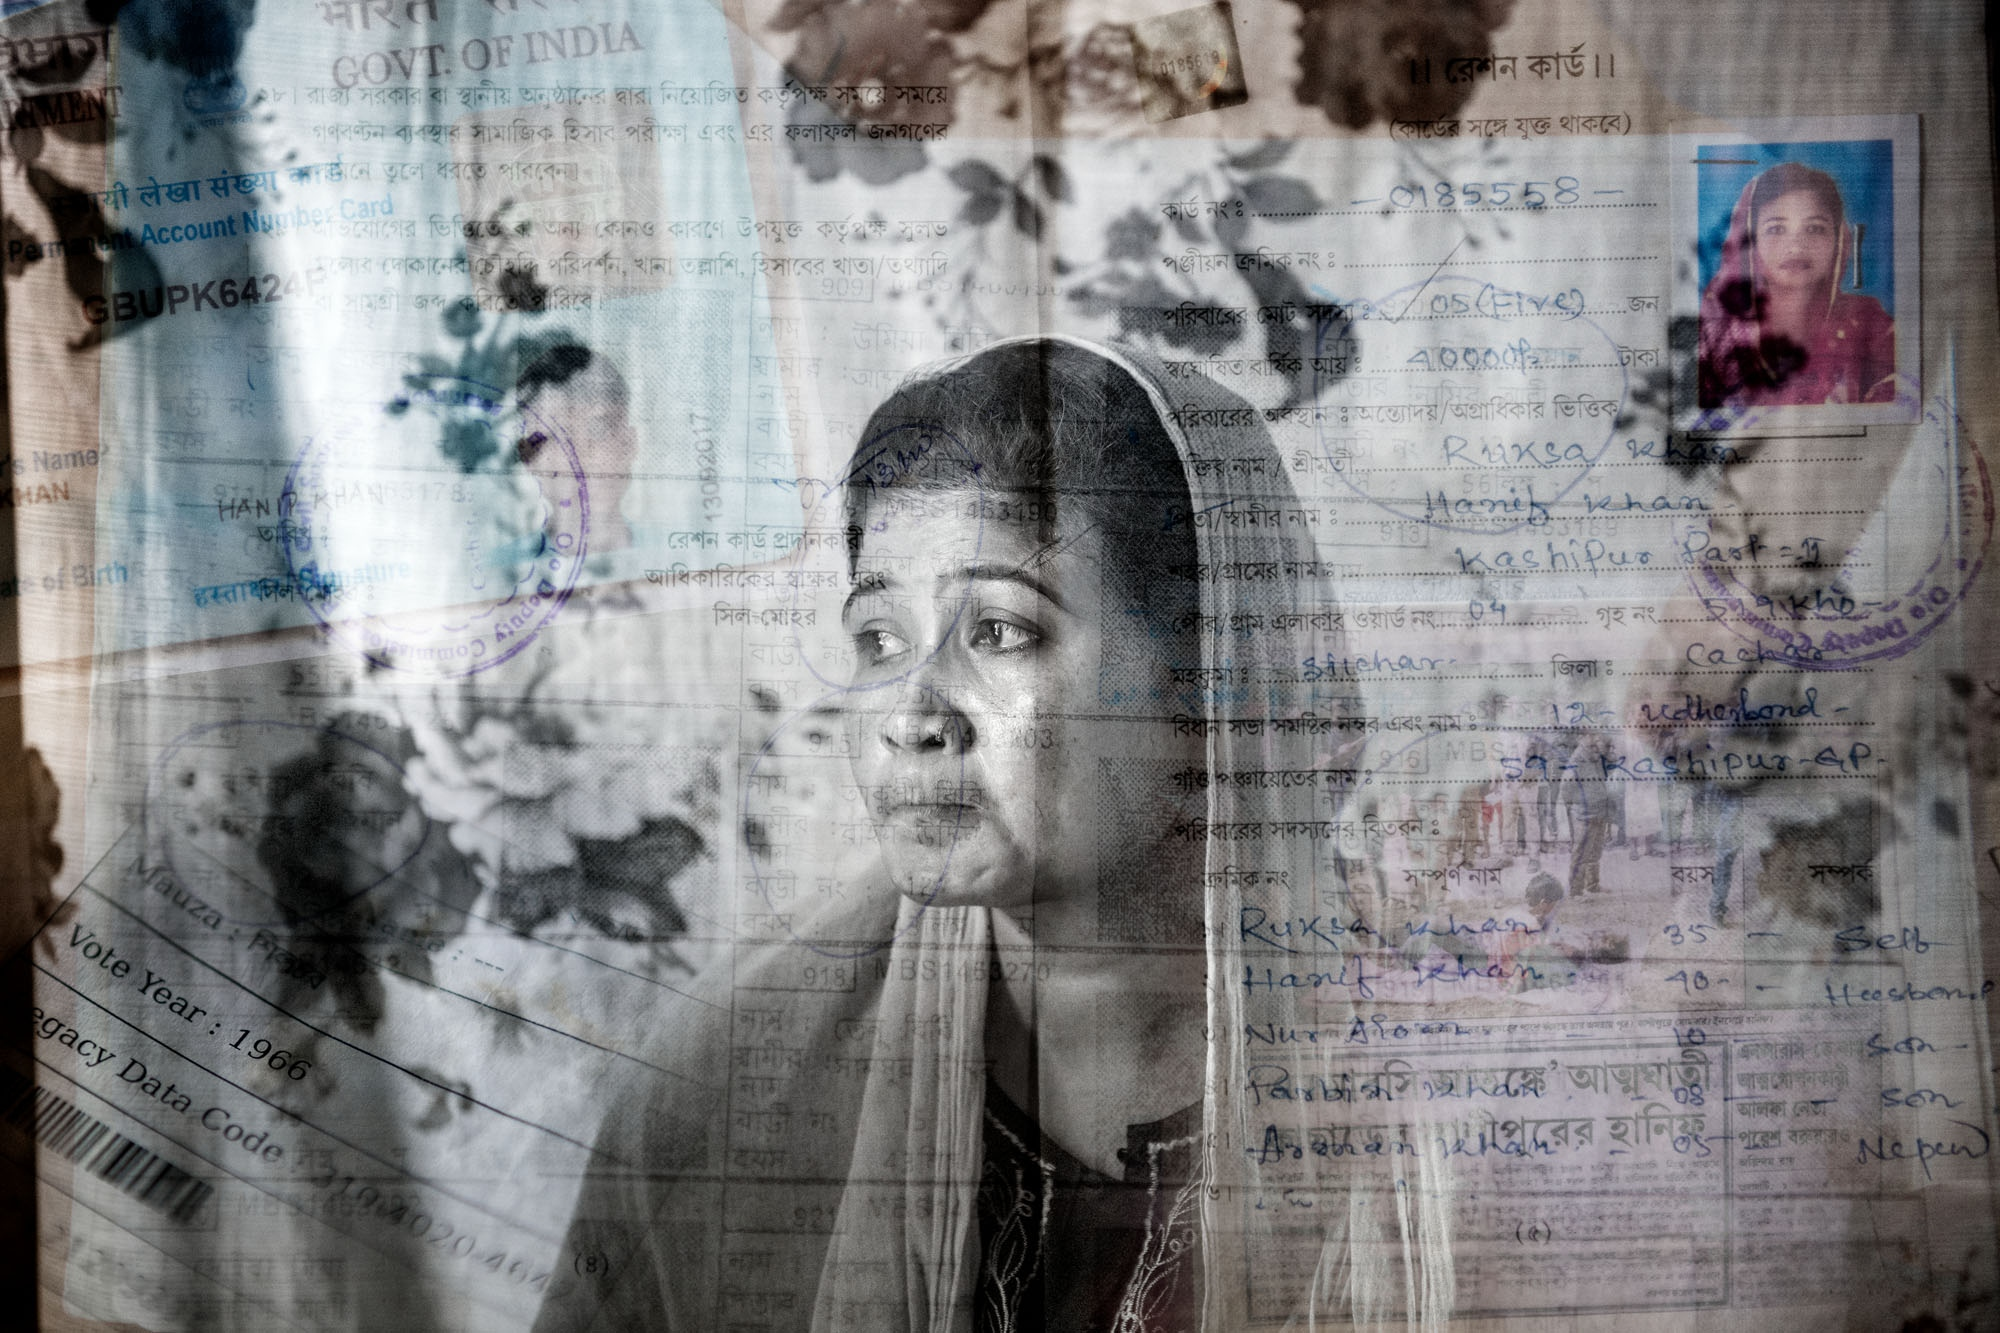 Ruksha Khan, 29 years, is not on the NRC final draft list. When her husband found out that he was not on the list he panicked and took his own life. Ruksha Khan is now left alone to care for their three children. She has documents showing her parents voted in 1966, a ration card, id card and tax listings proving her citizenship, but they are not accepted by the NRC authorities.